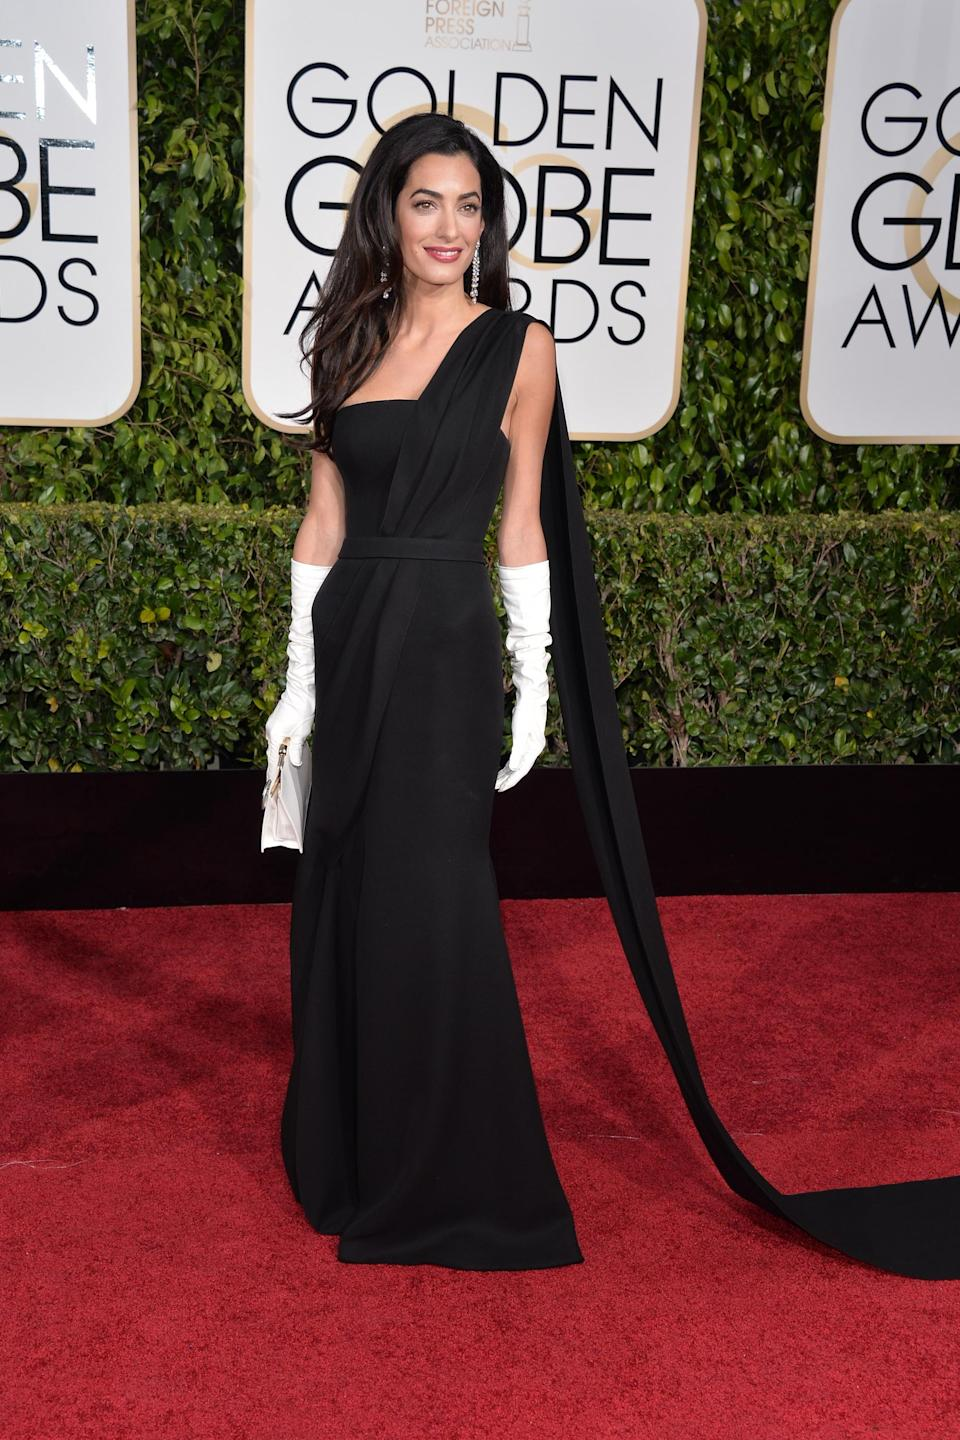 """<strong><h2>2015</h2></strong><br>Wearing black on the red carpet is hardly groundbreaking, but Amal Clooney has a way of standing out in a crowd, especially when she's donning head-to-toe Dior Haute Couture.<br><br><em>Amal Clooney in Dior Haute Couture.</em><span class=""""copyright"""">Photo: George Pimentel/WireImage.</span>"""